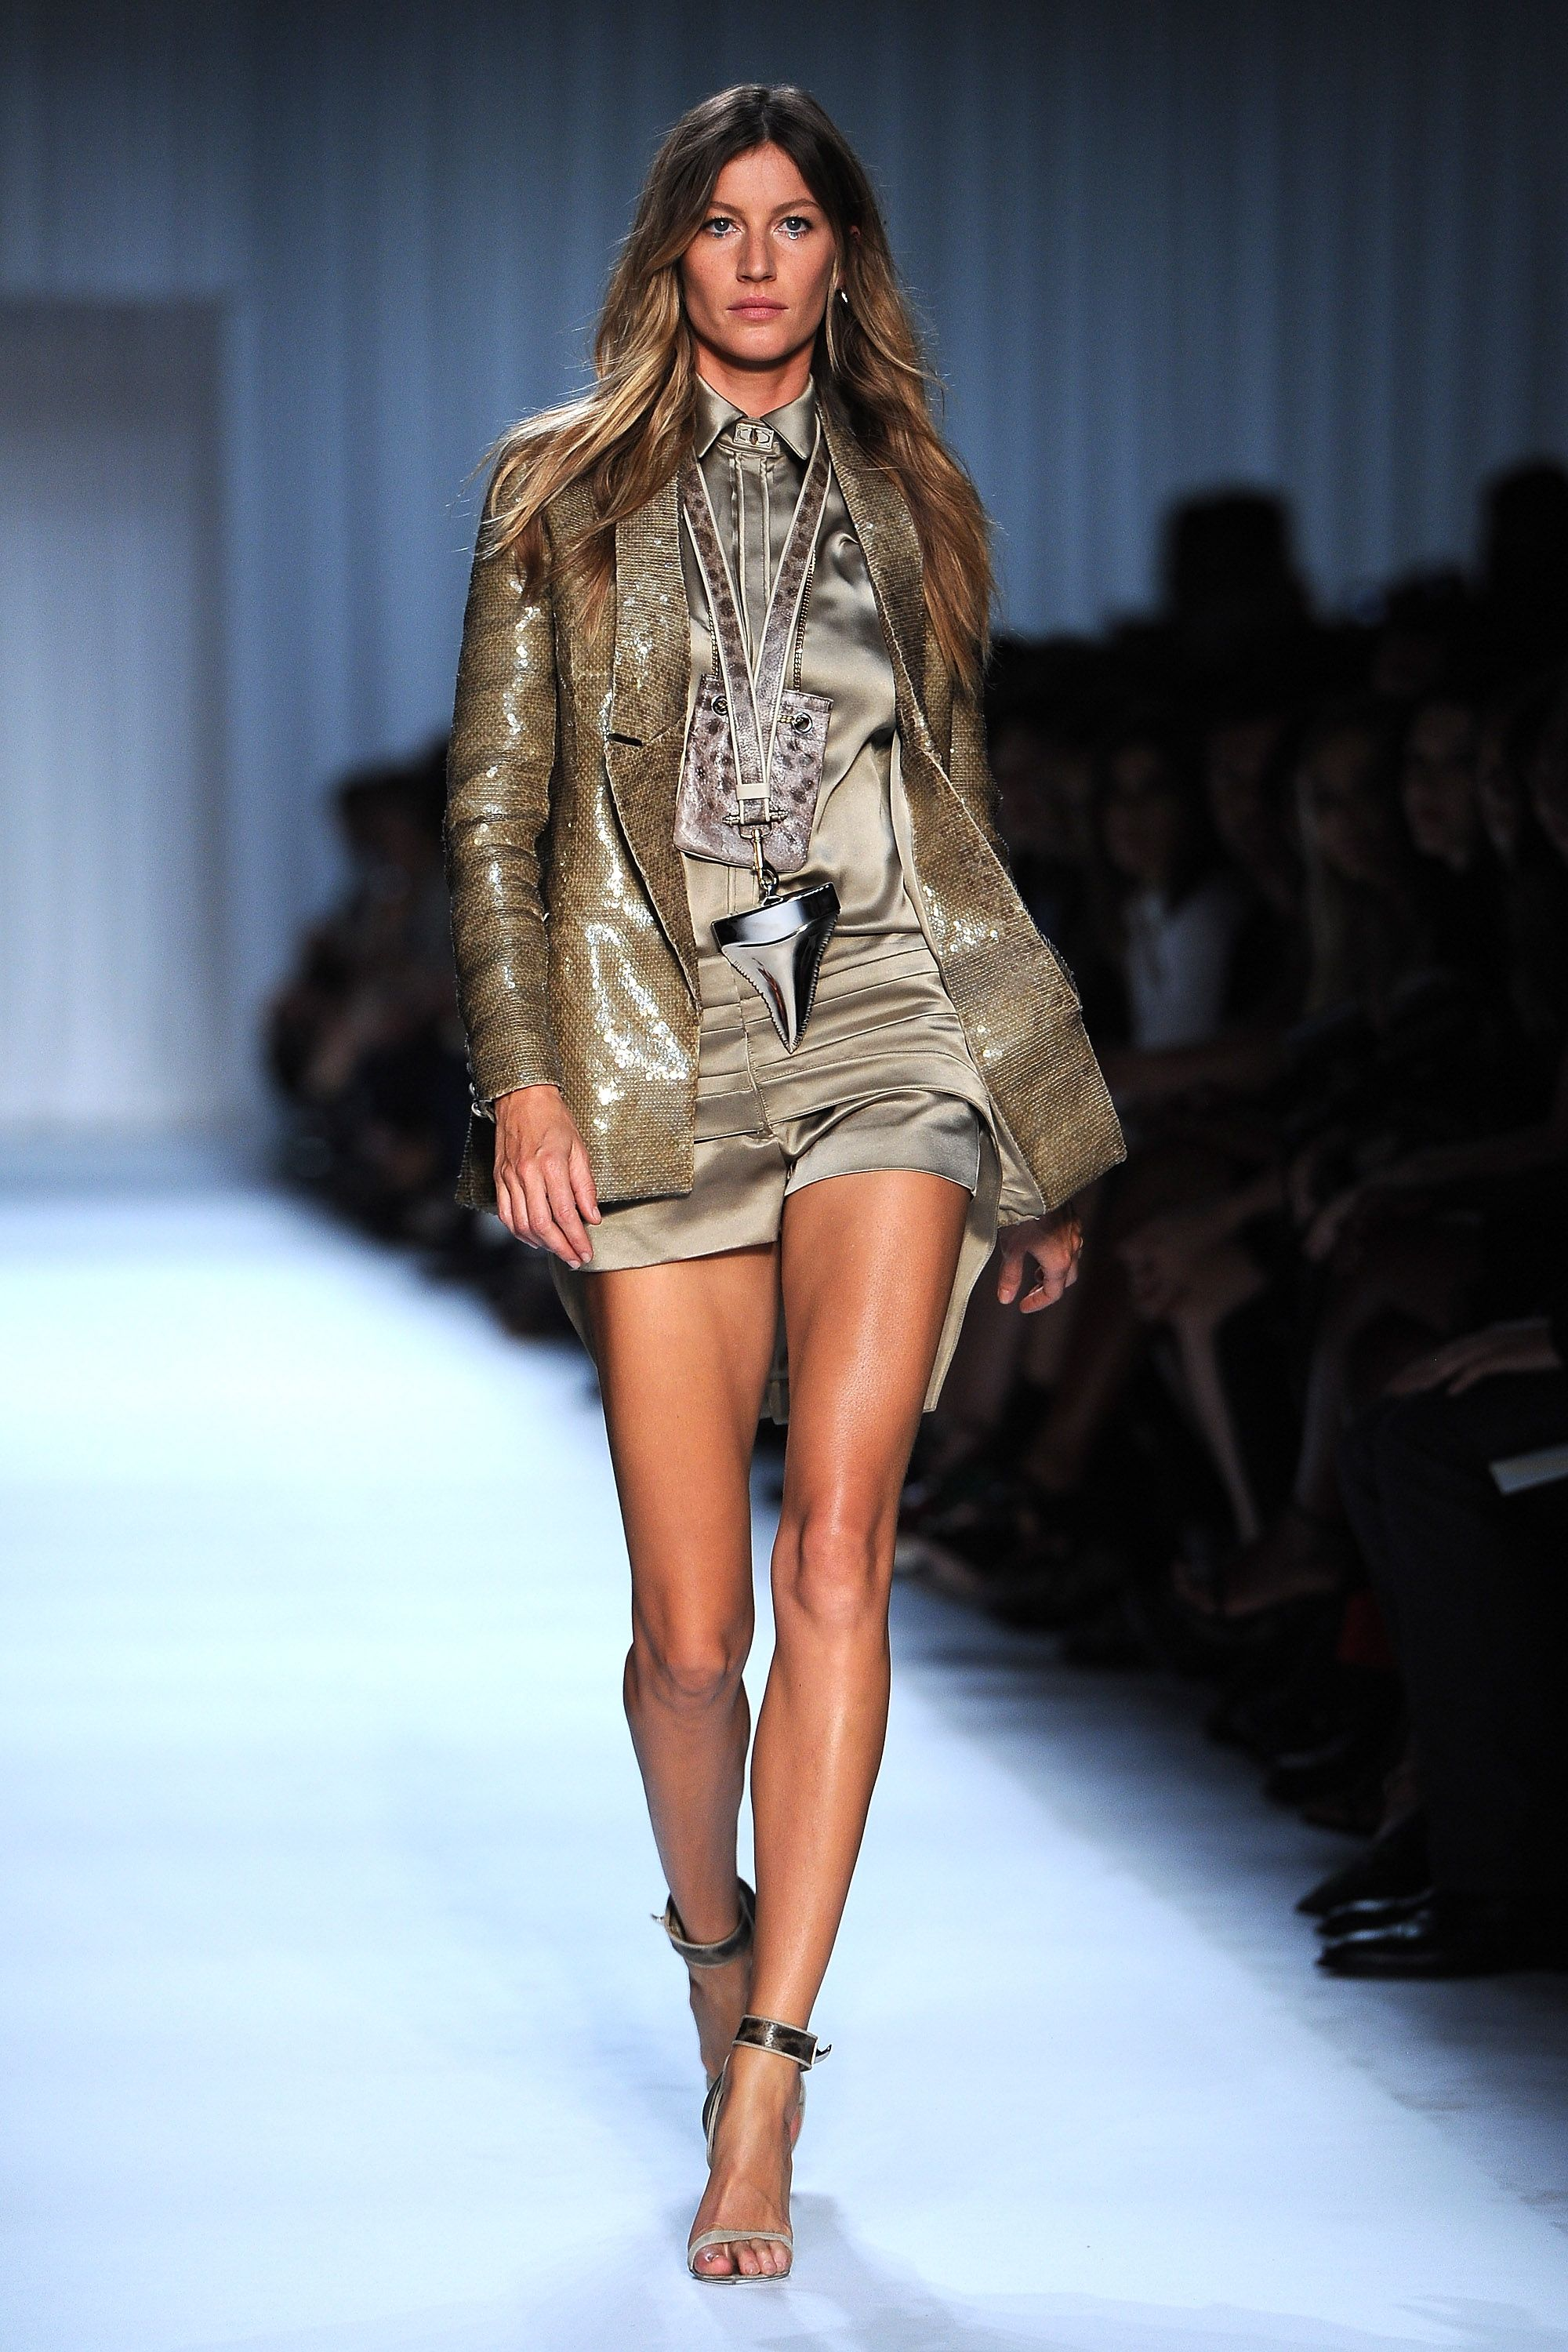 """Gisele Bündchen Bündchen made her runway debut at New York Fashion Week in 1996 and the rest was history. The Brazilian model hit the peak of her career as a Victoria's Secret Angel from 2000 to 2007, pioneered the """"horse walk"""" (when a model picks her knees up high and kicks her feet out in front), and has landed high-fashion campaigns with everyone from Chanel and Givenchy to Versace and Salvatore Ferragamo."""